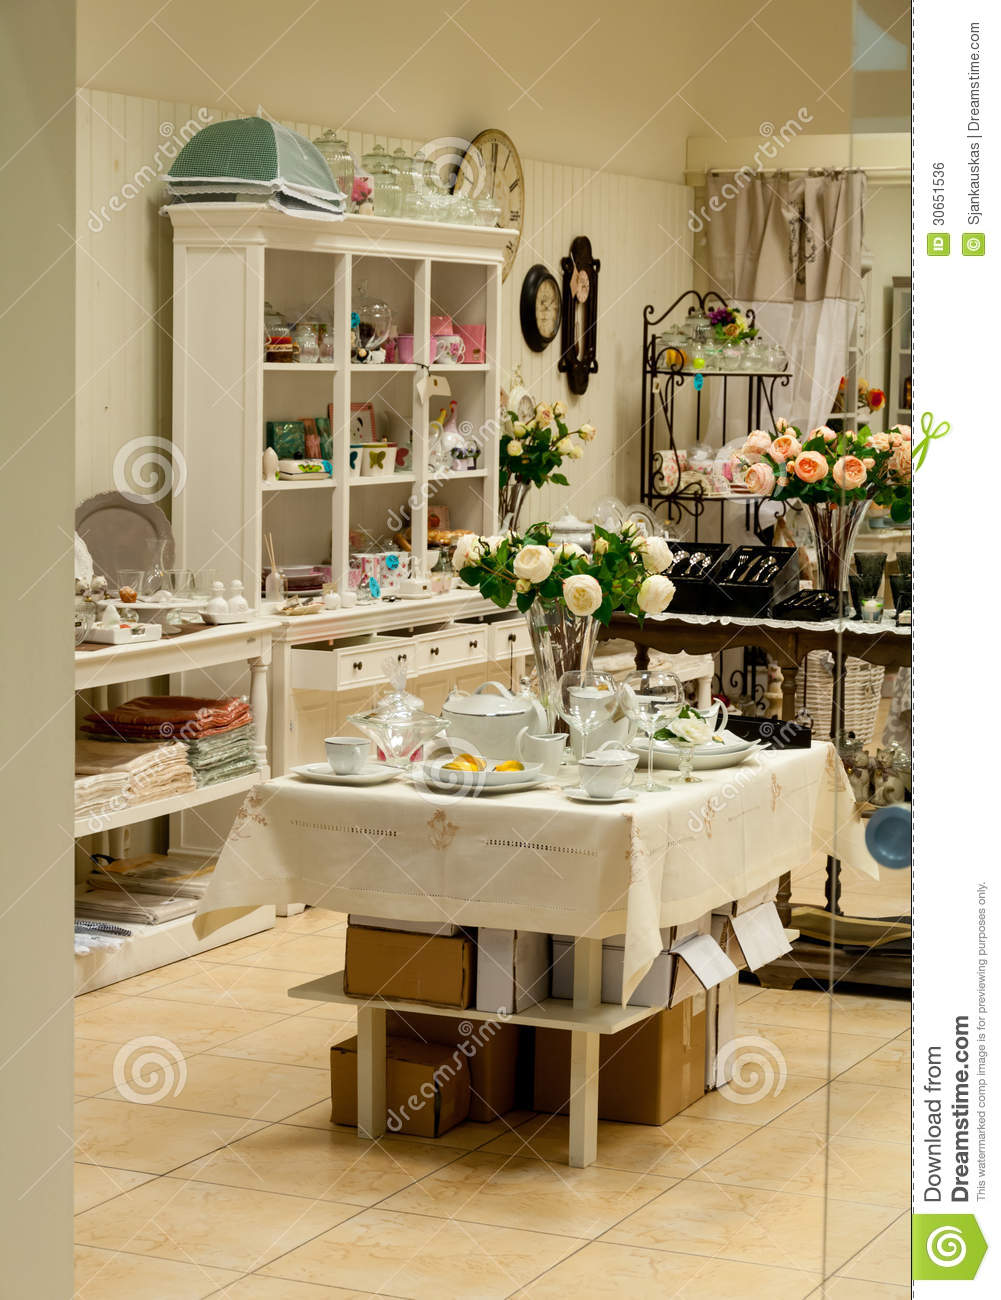 Home decor and dishes shop royalty free stock image for Home decor outlet 63125